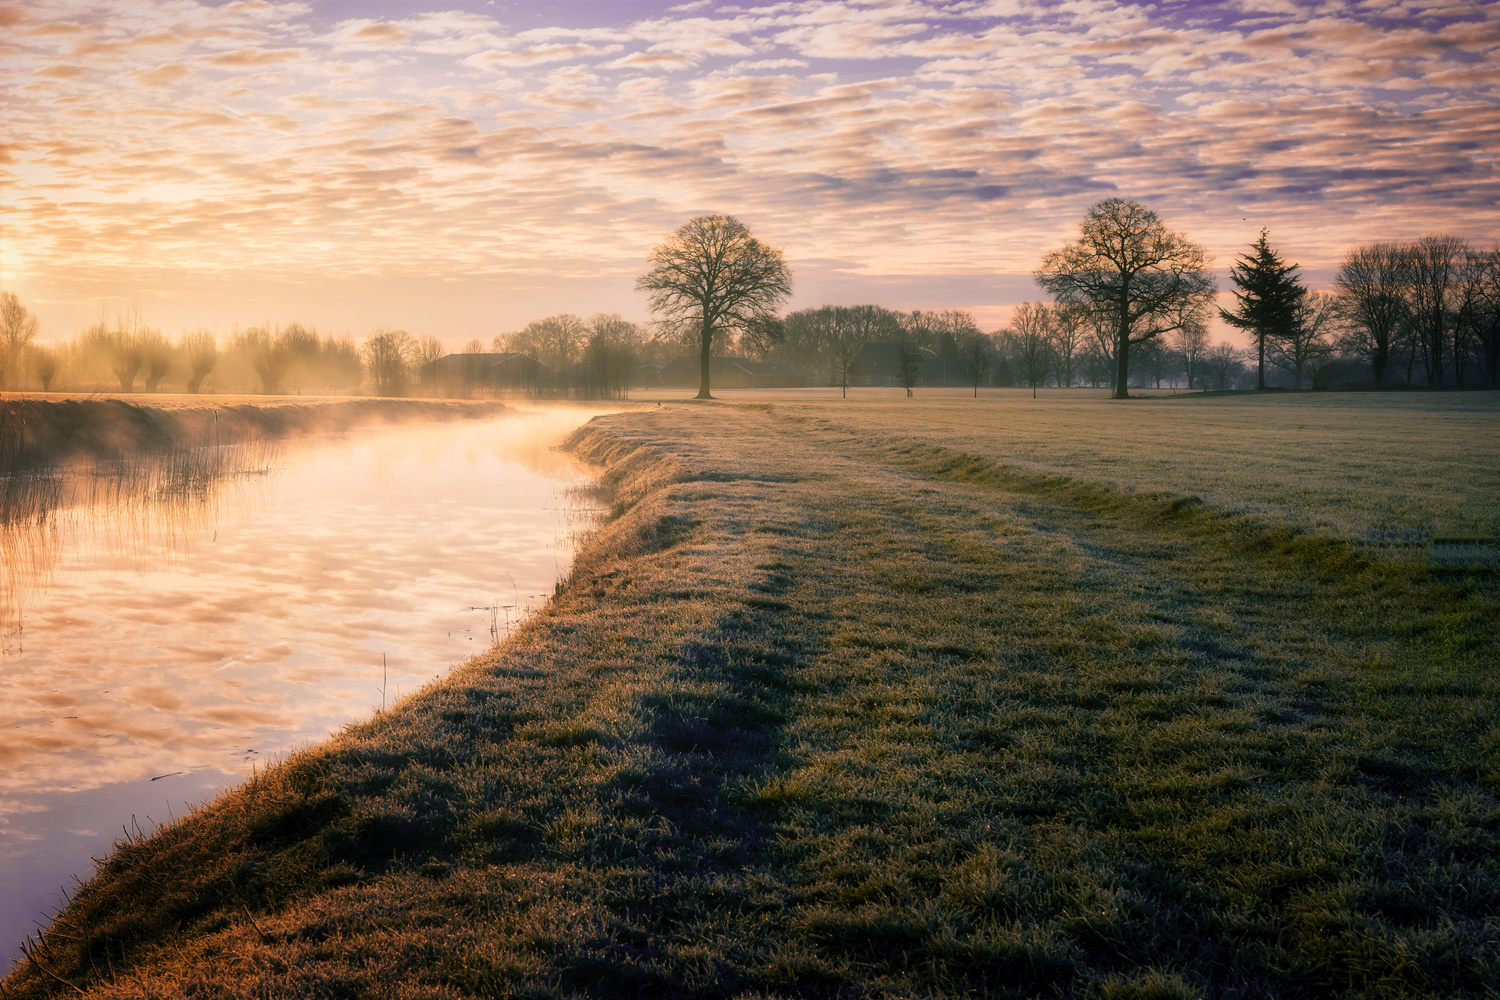 Sunrise over the meadows in the Netherlands by Jaimy Leemburg